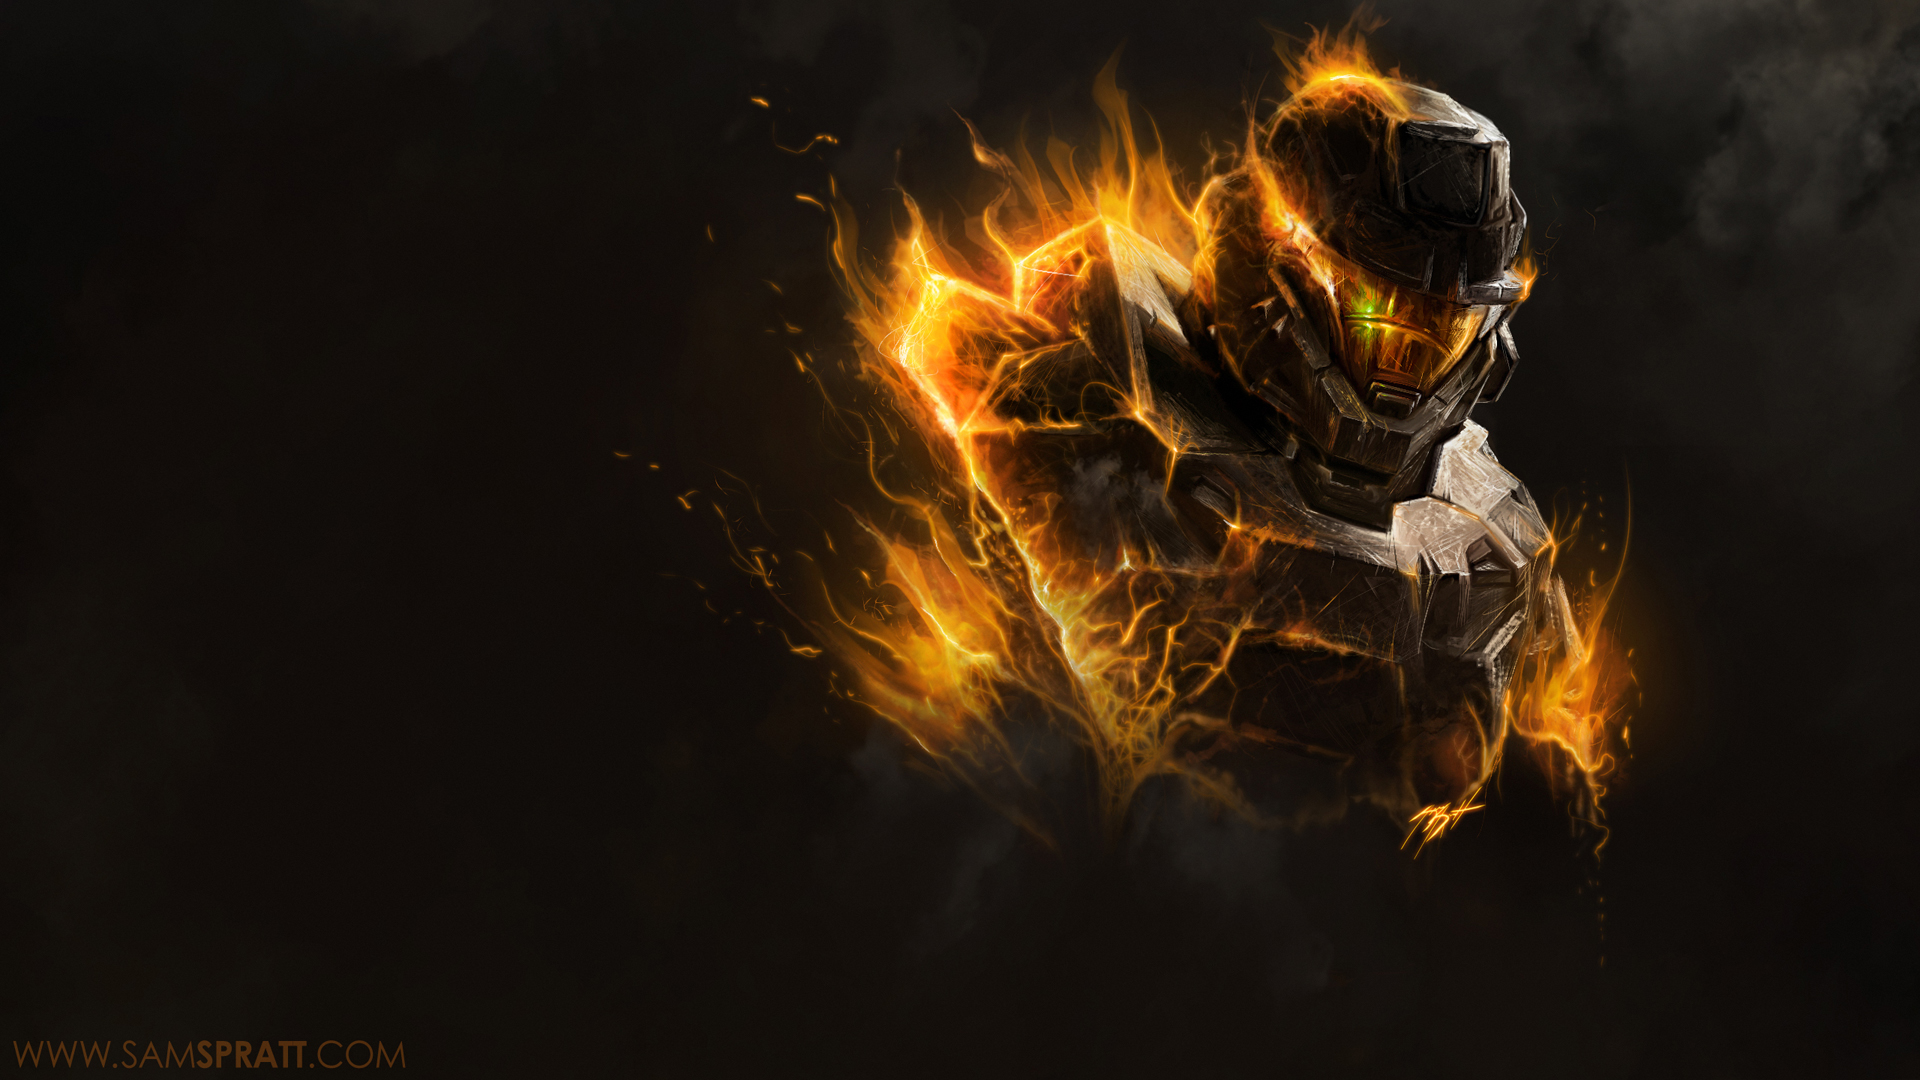 Windows 7 Themes: Halo Reach WallPapers &- Theme [Game Themes]